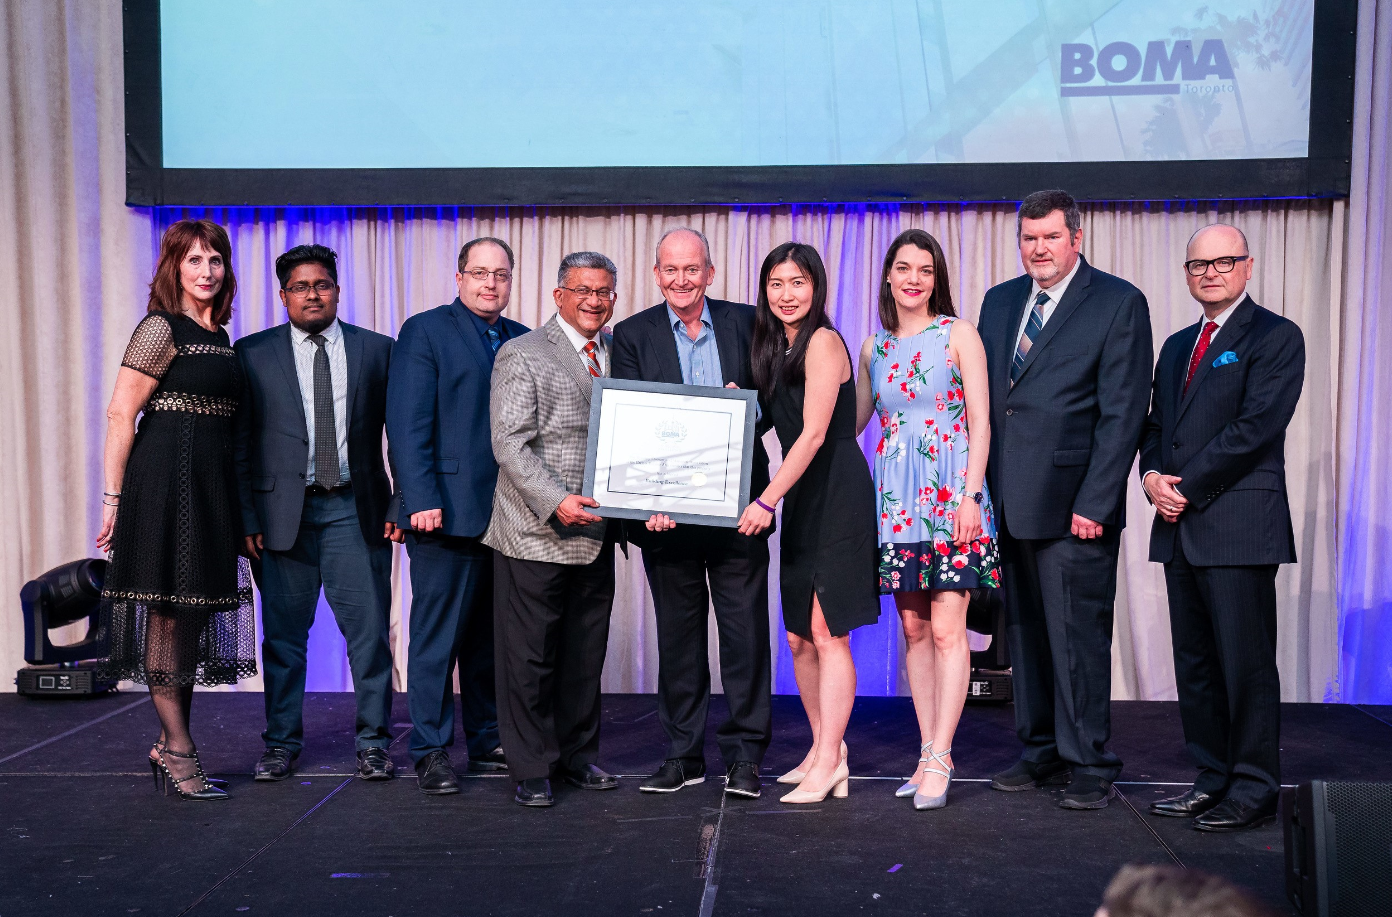 BOMA Certificate of Excellence